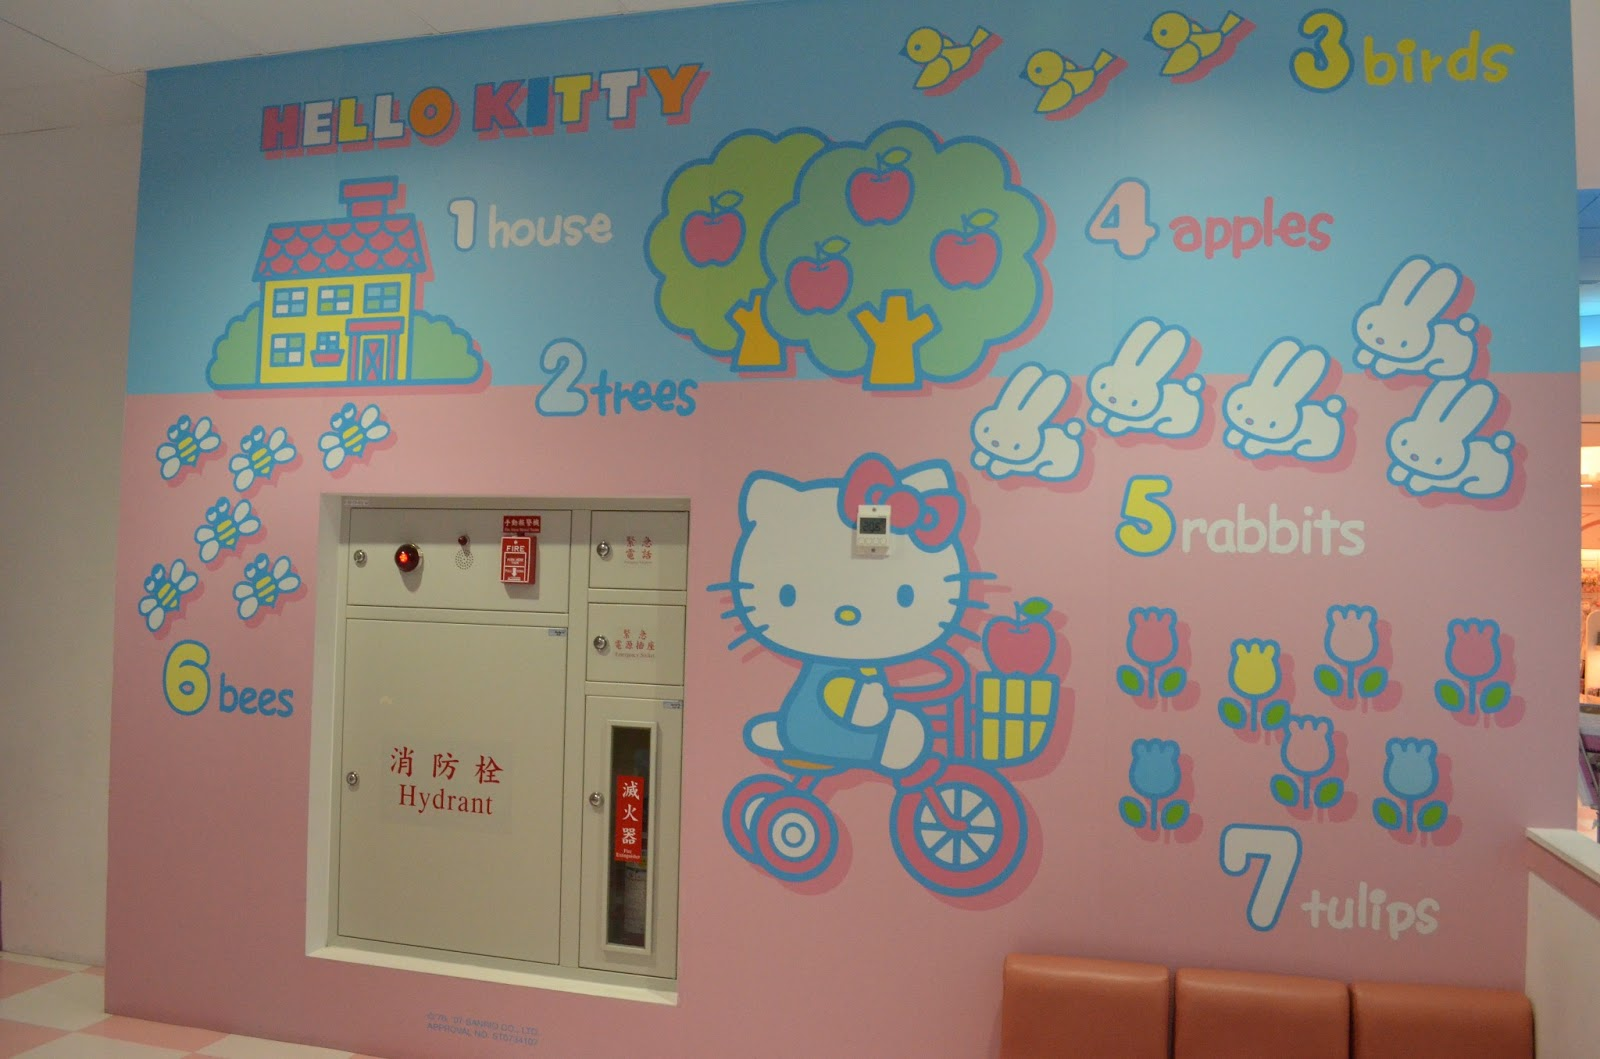 Eva Air Hello Kitty Terminal in Taiwan | A Light Review